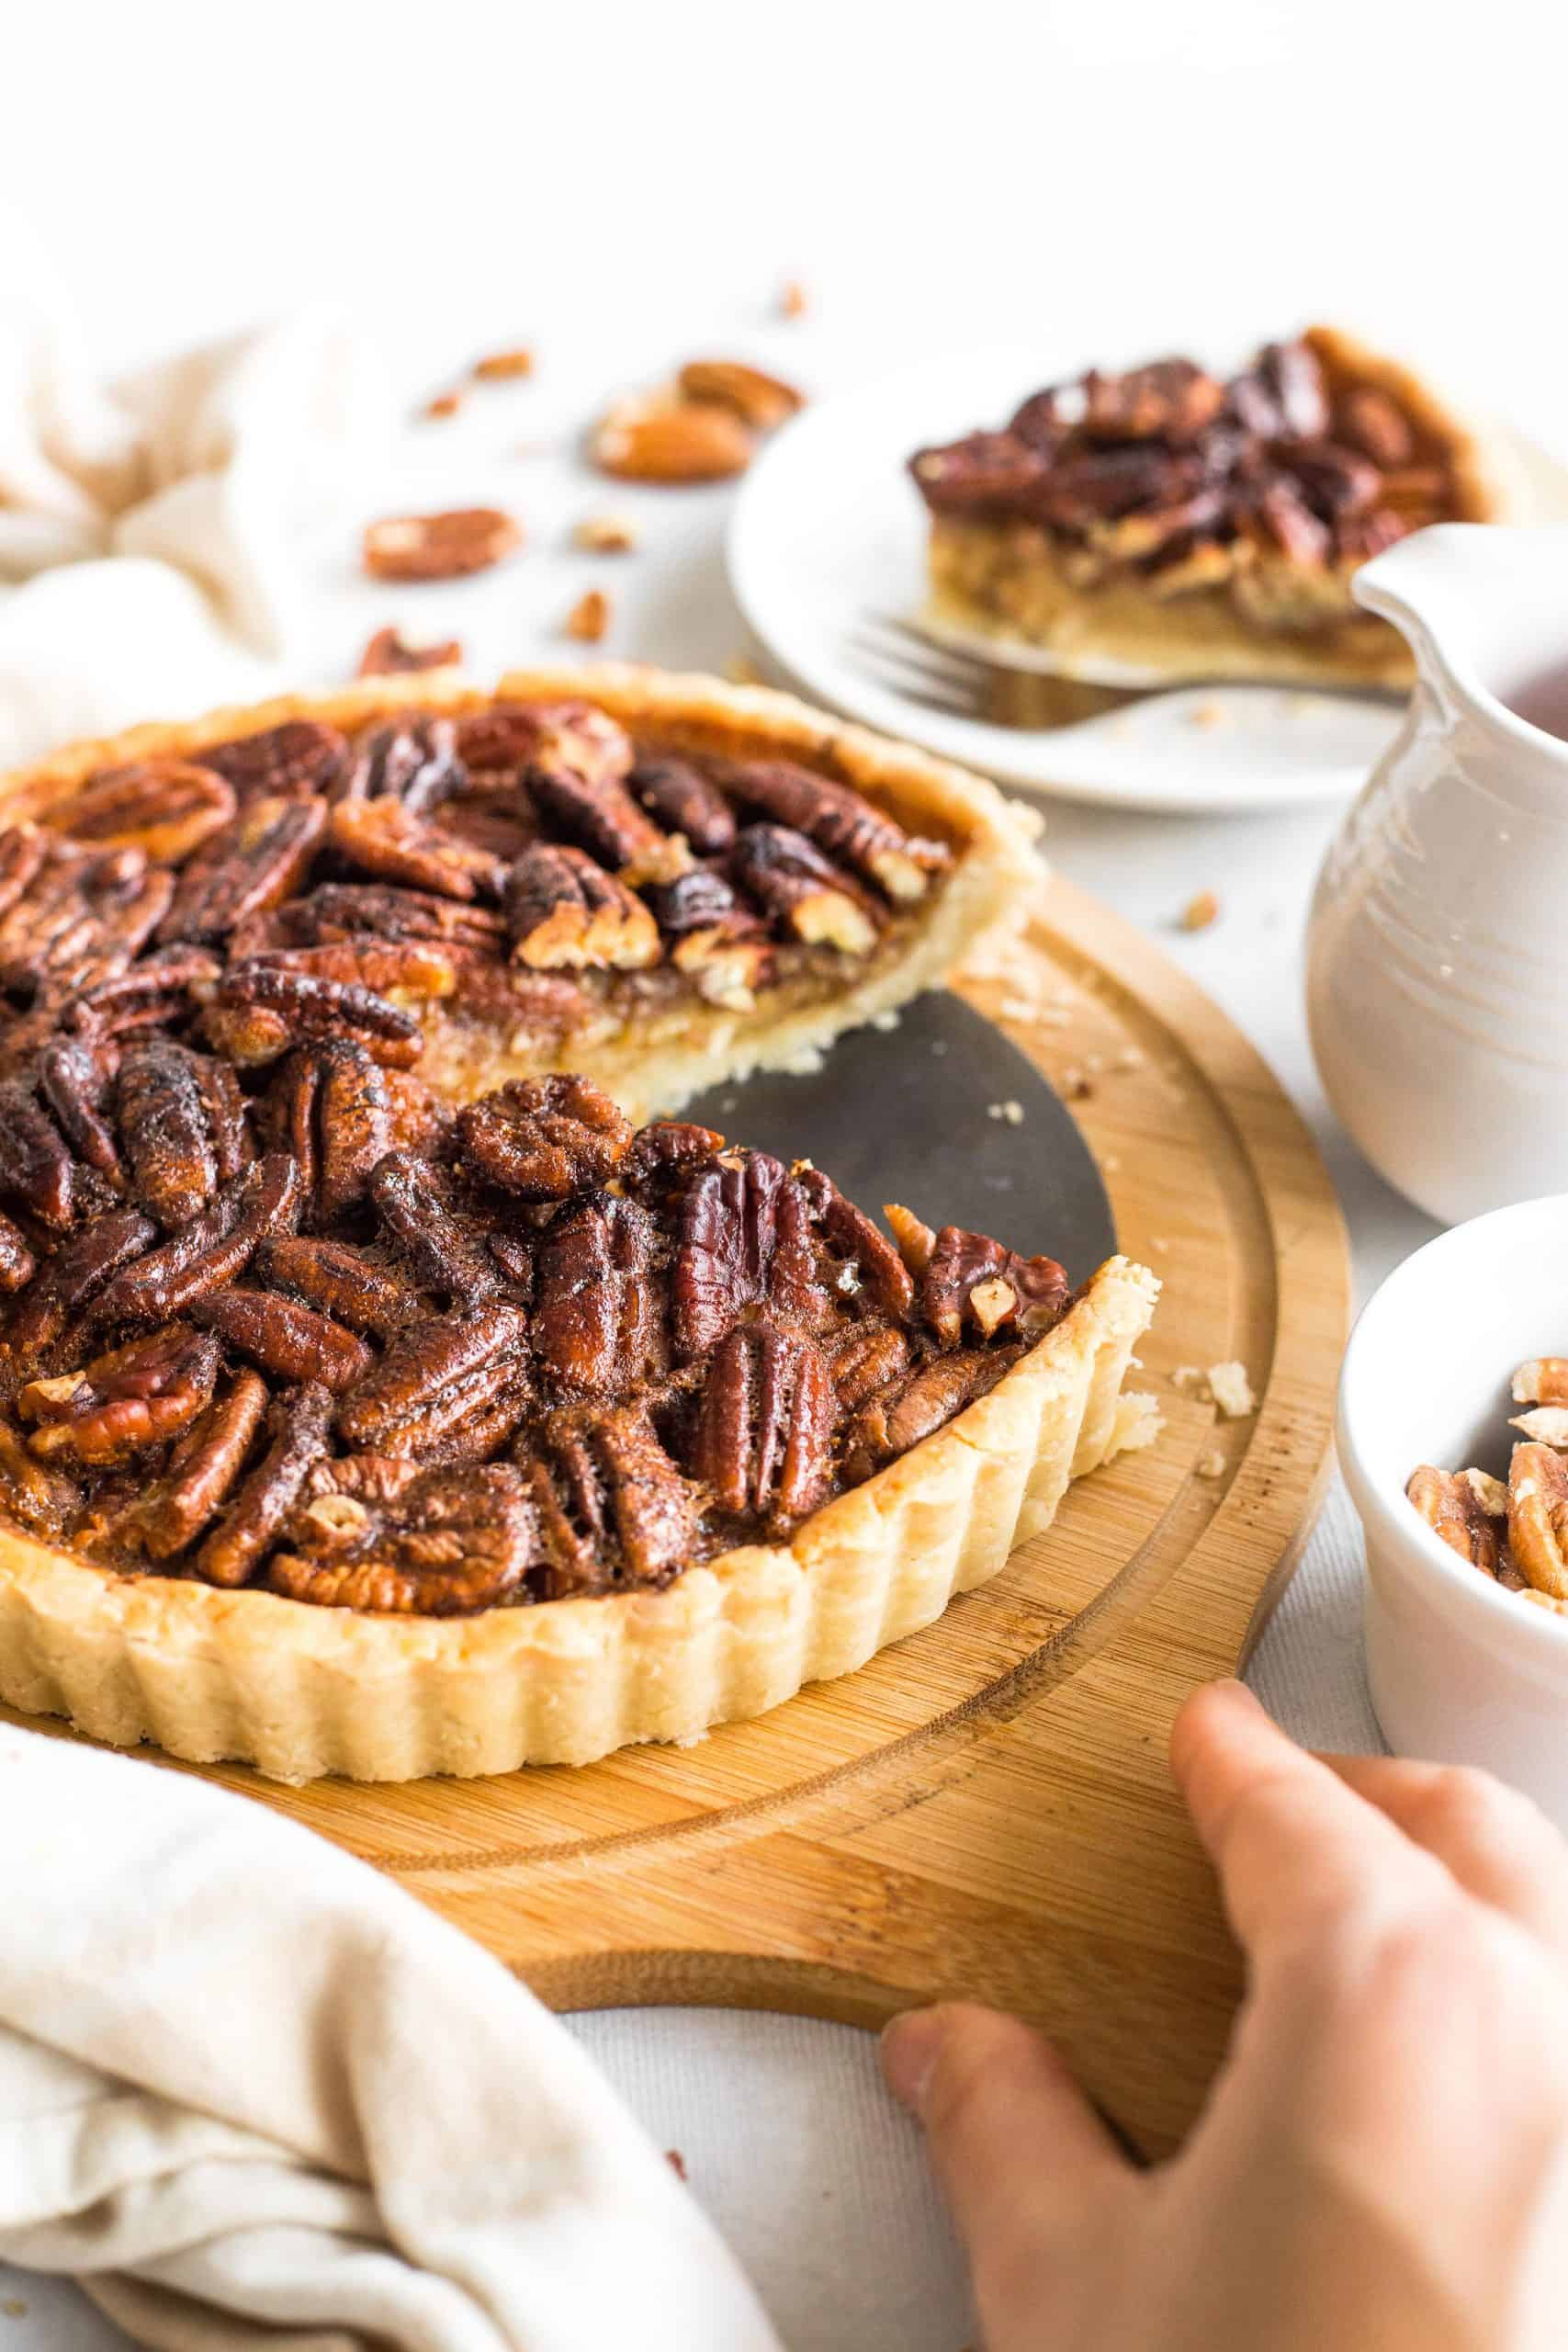 Hand holding a wooden board with pecan pie on it.